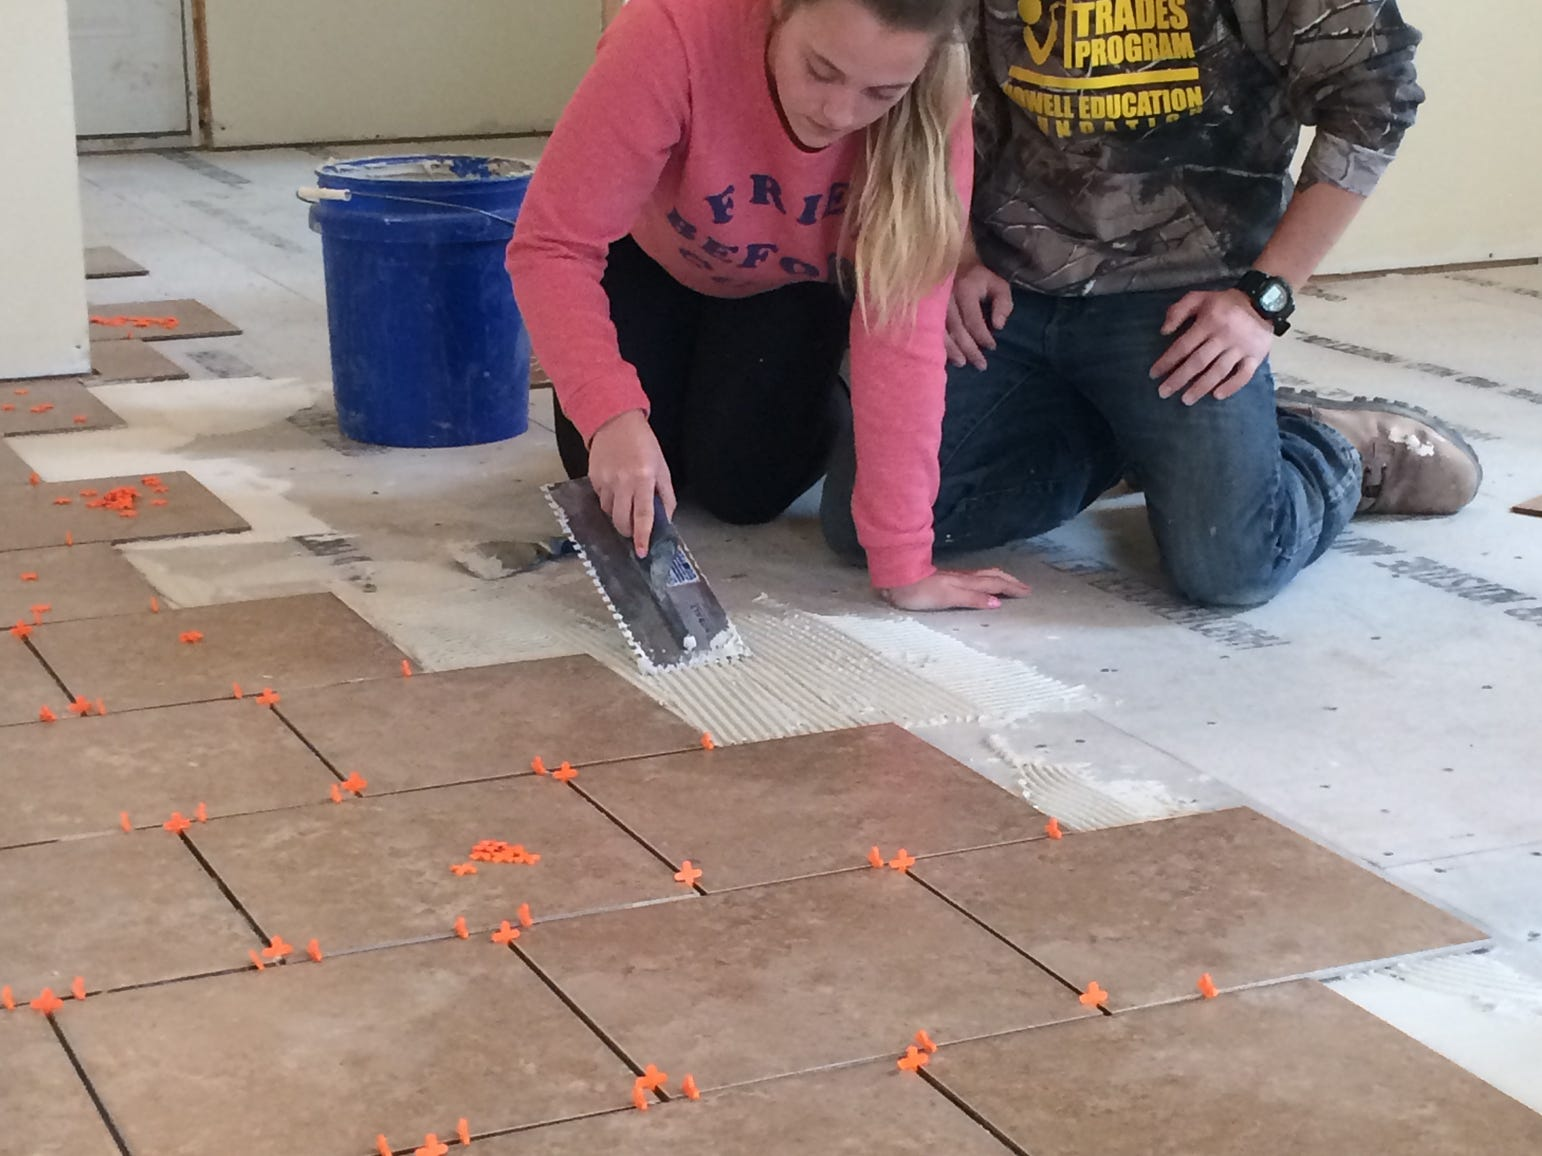 Whitmore Lake senior Jamie Gimson and Howell High School senior Sam Wallace place tiles down in a house they are building as part of a countywide Construction Trade Program high school students are able to participate in.